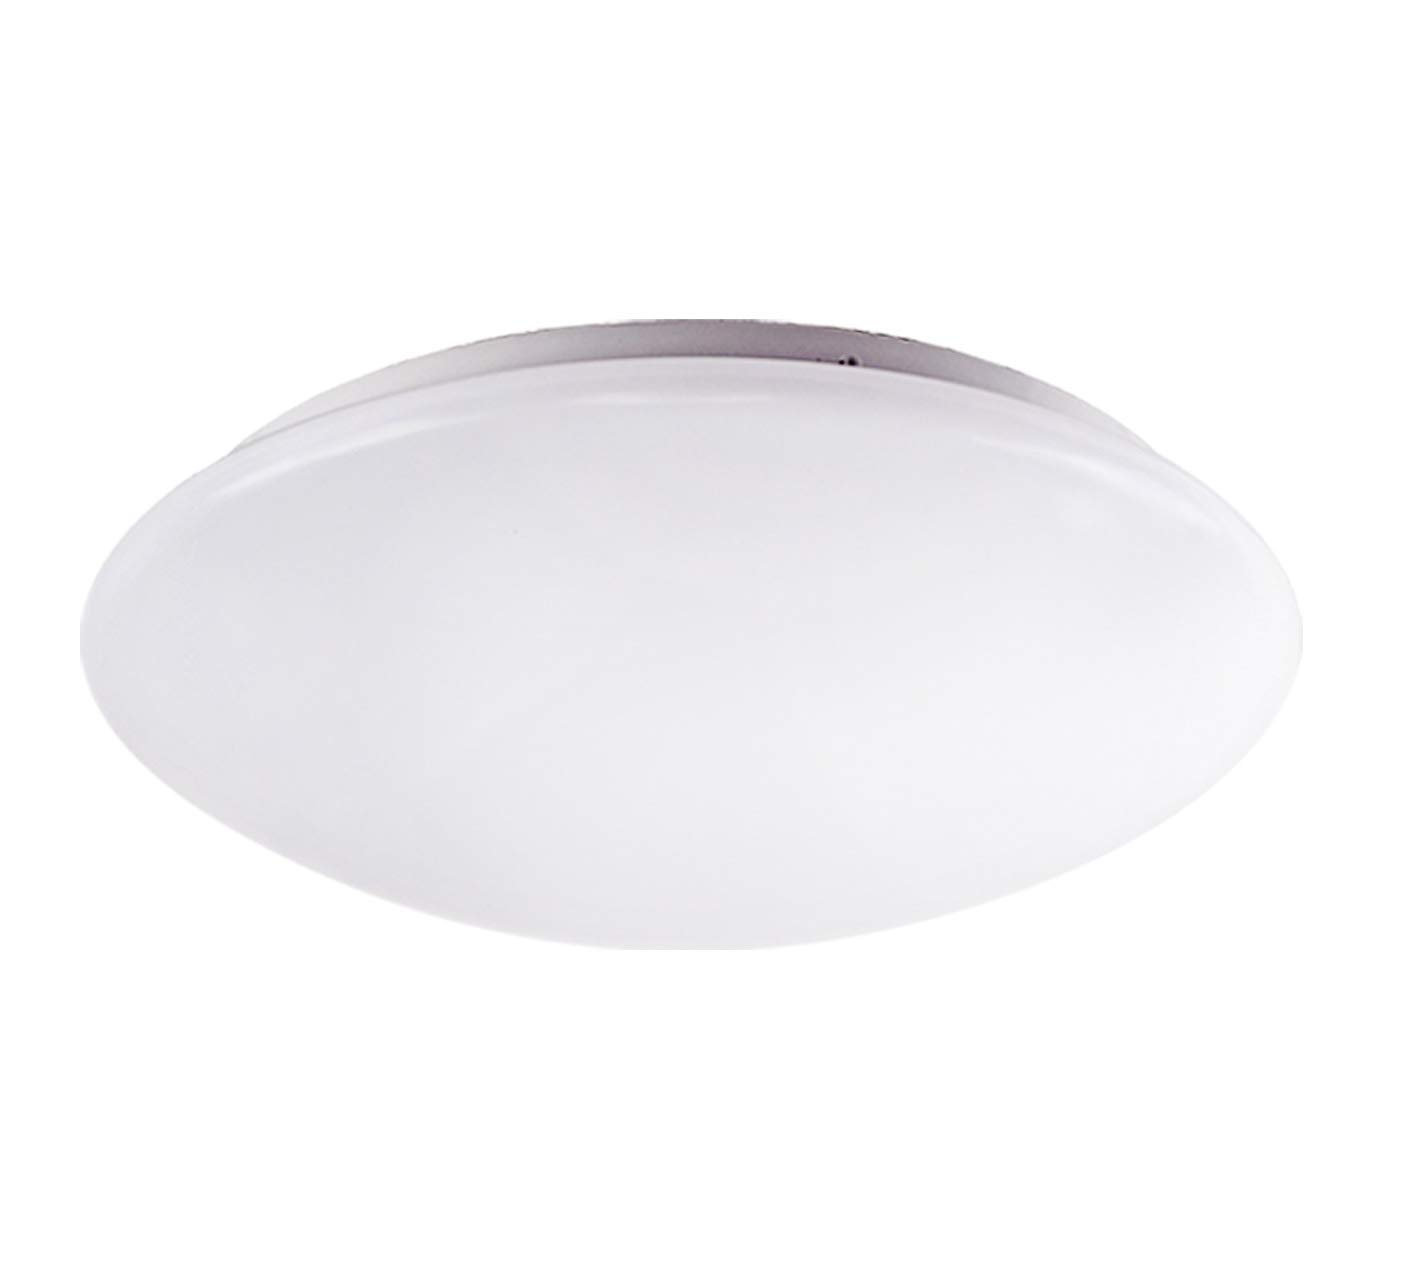 LED Ceiling Light Fixtures Residential Reviews 2019 ...